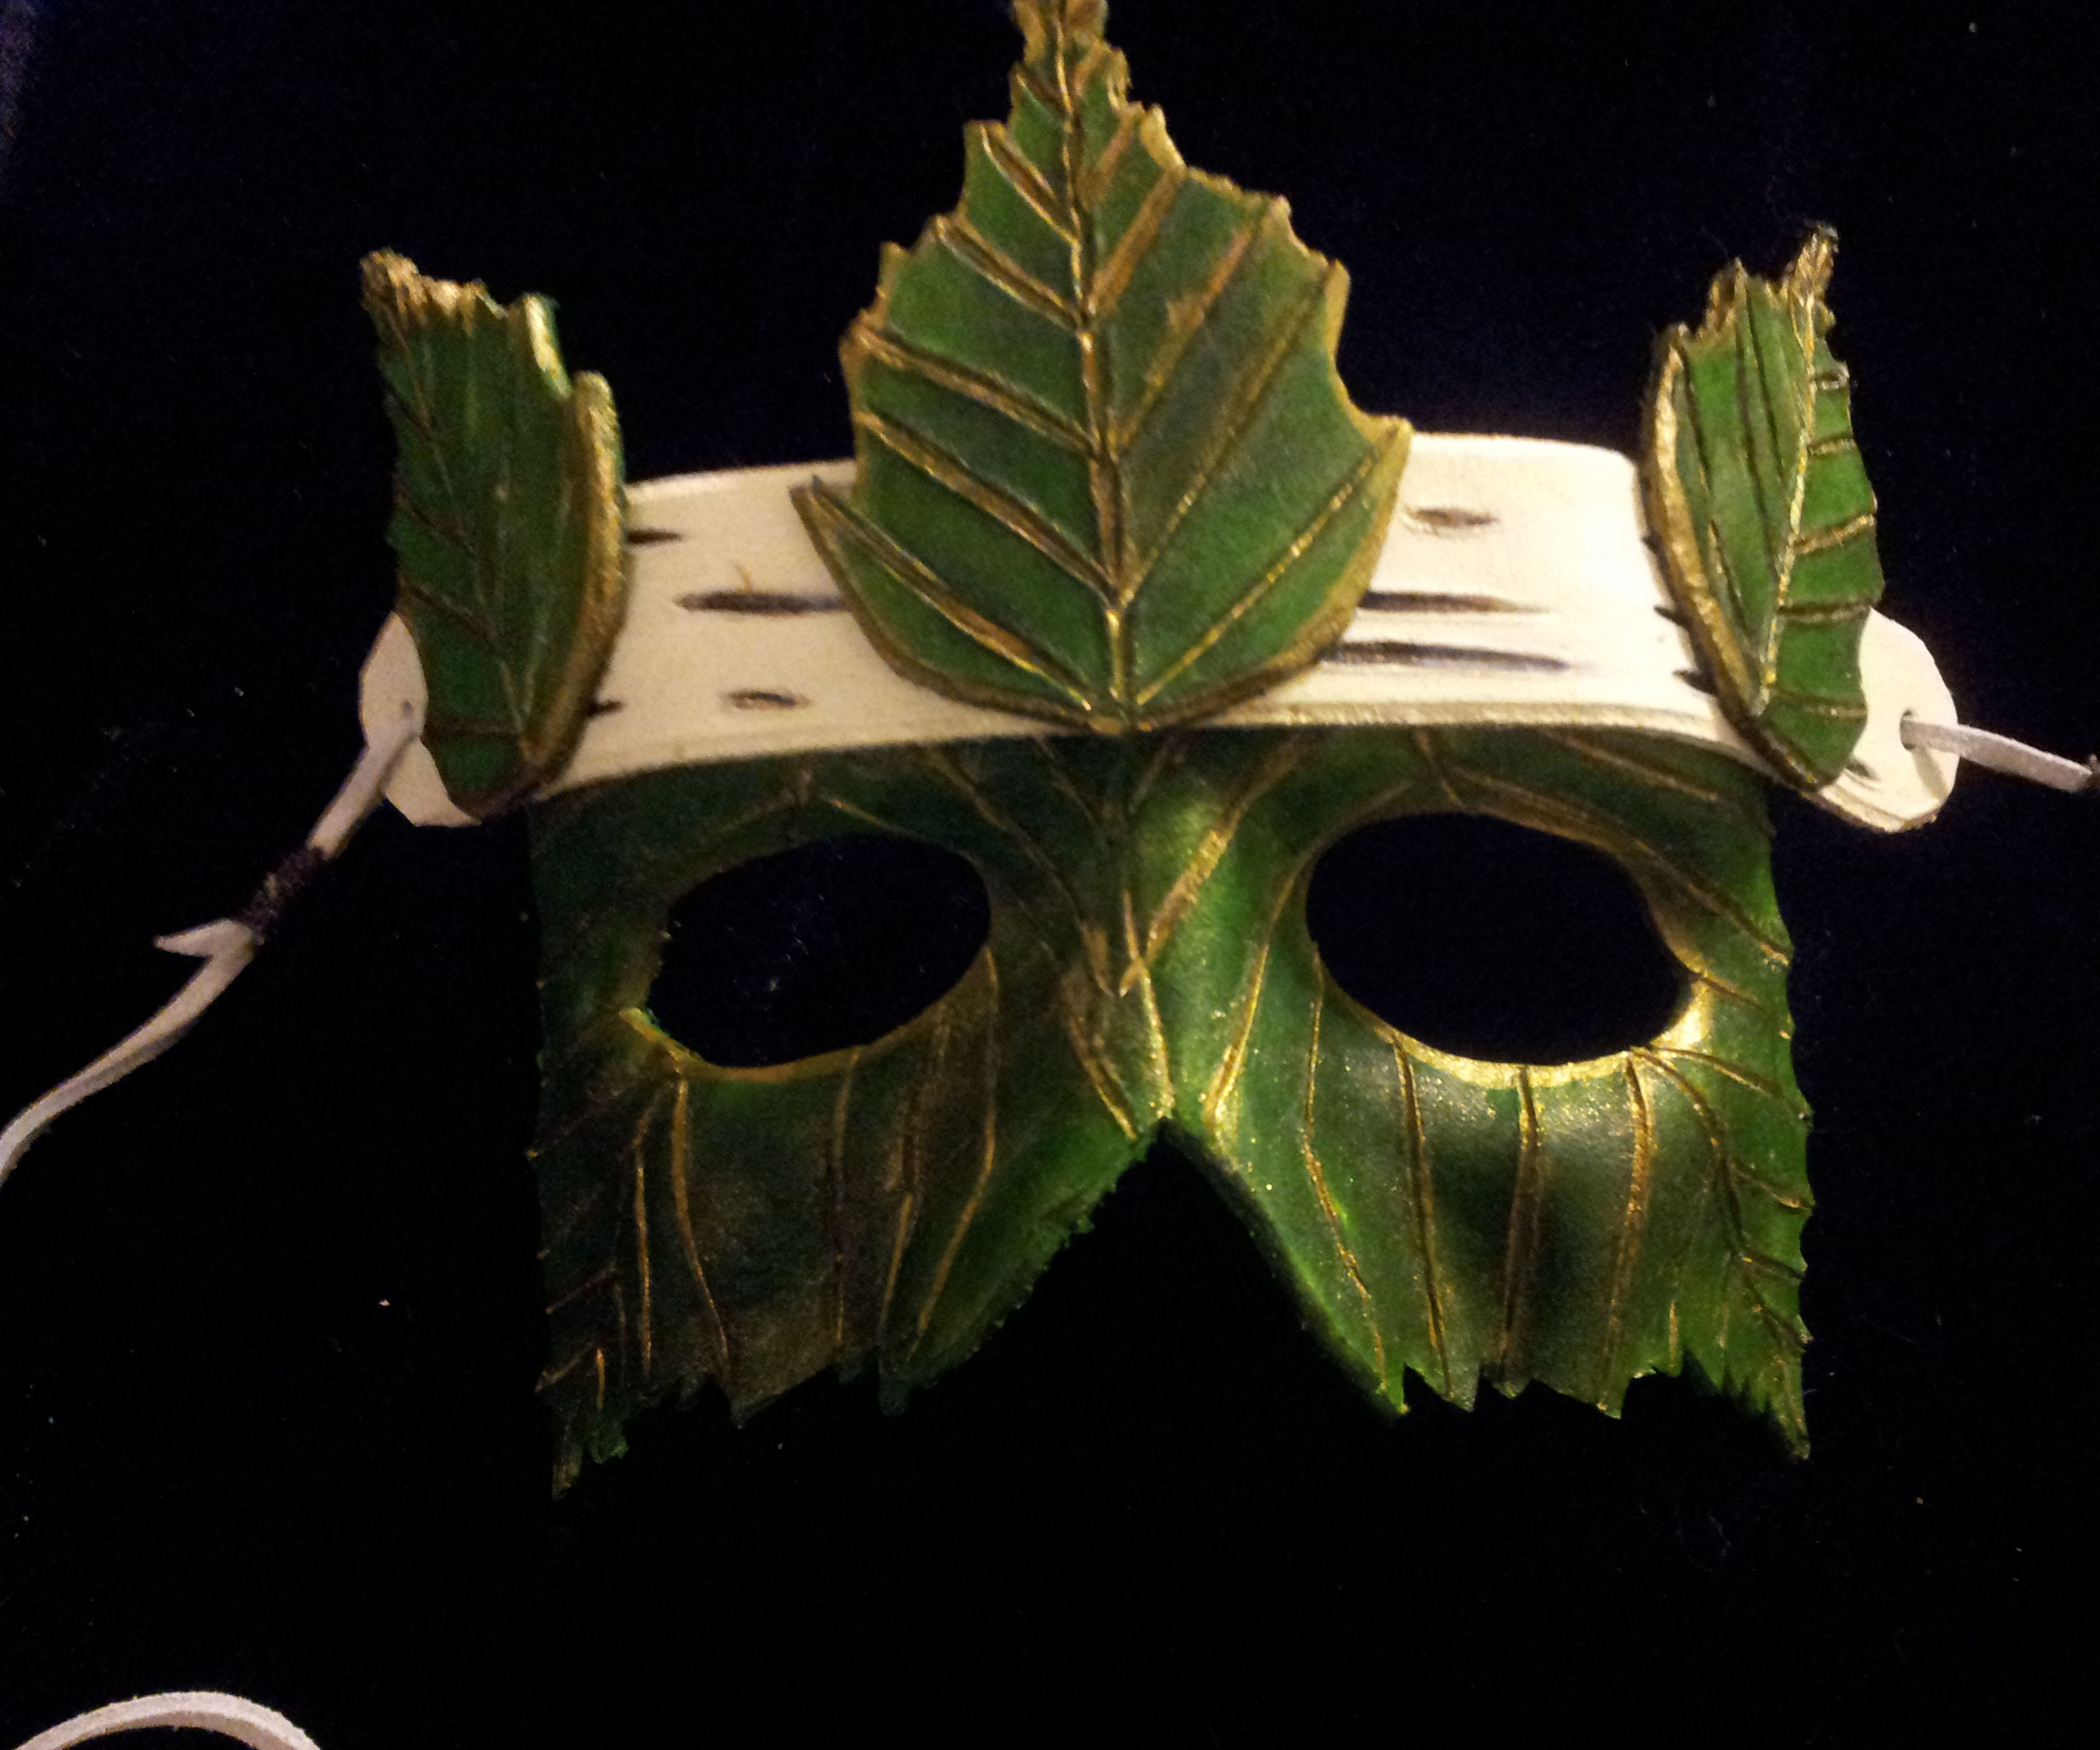 How to Make a Silver Birch Leaf Leather Mask